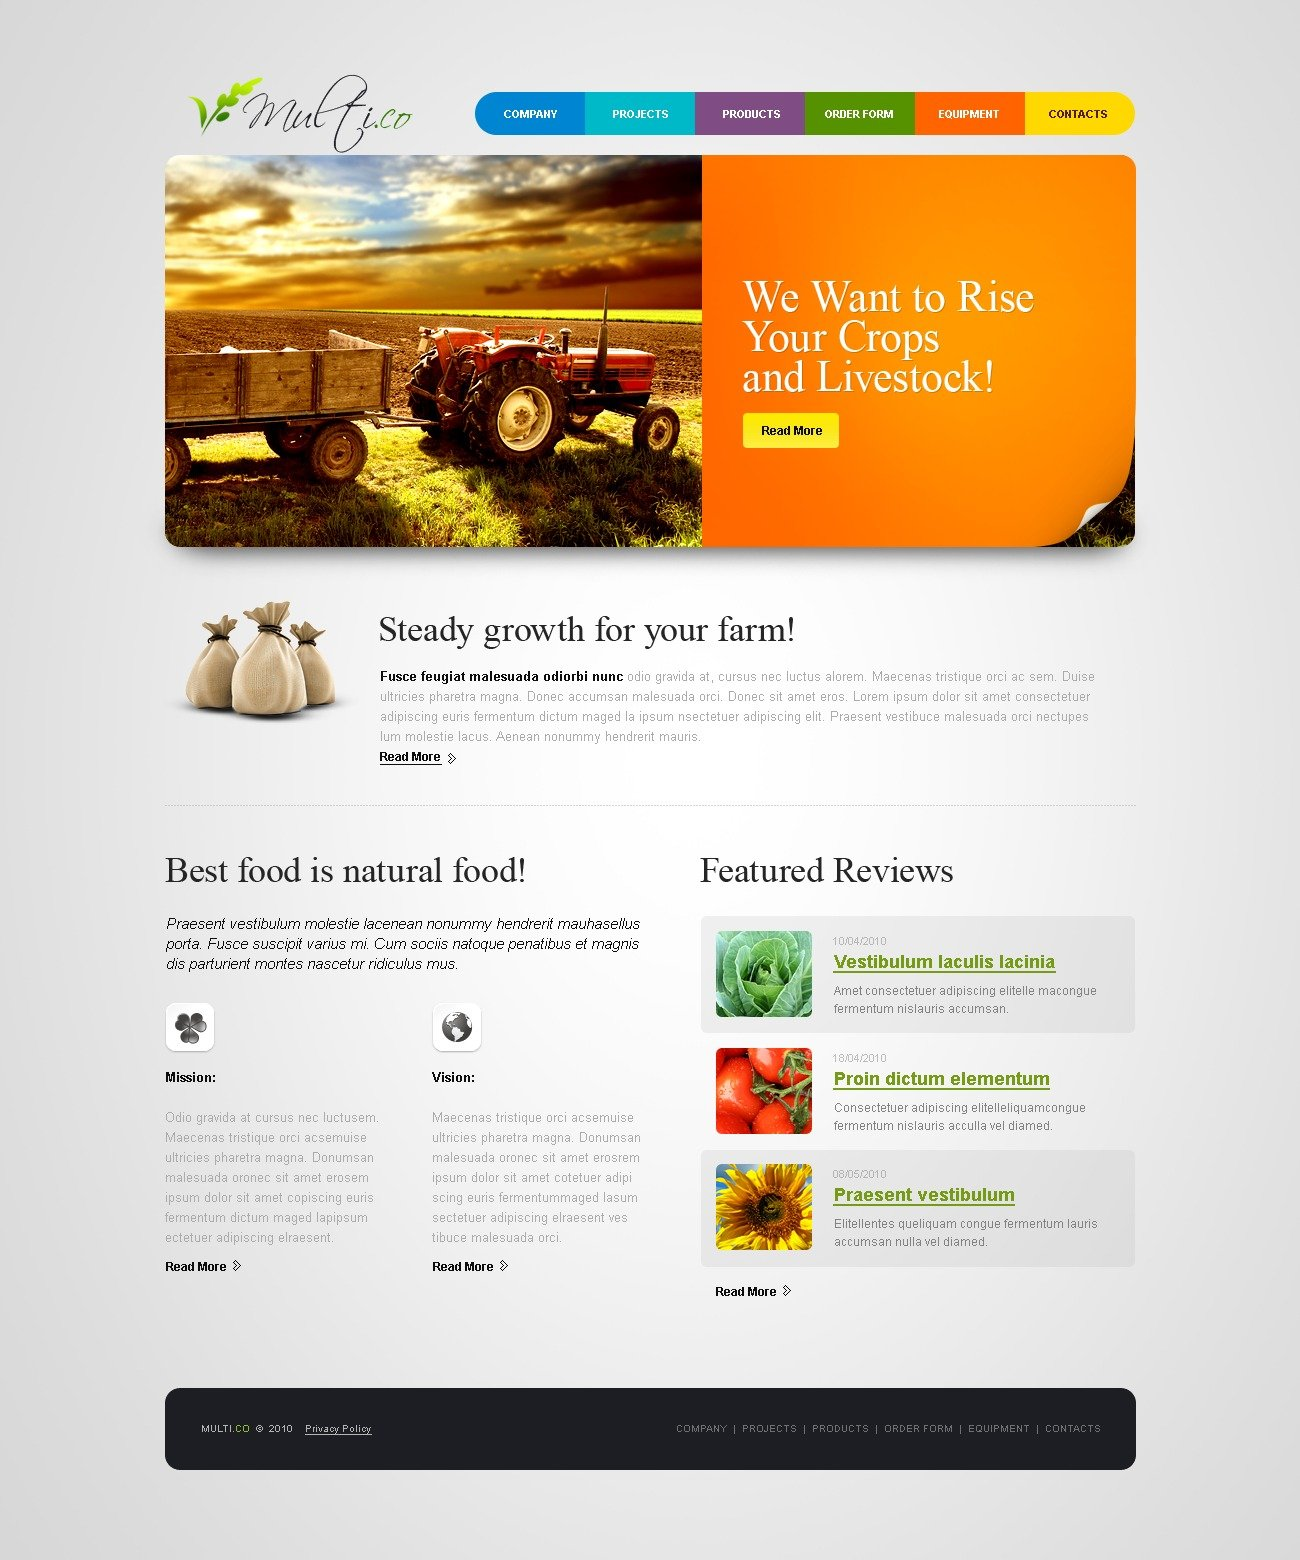 The Multi Company PSD Design 54350, one of the best PSD templates of its kind (agriculture, flash 8, wide), also known as multi company PSD template, agriculture company PSD template, business PSD template, grain-crops PSD template, cereals PSD template, field PSD template, combine PSD template, harvest PSD template, farming PSD template, plants PSD template, services PSD template, products solutions PSD template, market PSD template, delivery PSD template, resource PSD template, grassland PSD template, equipment PSD template, nitrates PSD template, fertilizer PSD template, clients PSD template, partners PSD template, innovations PSD template, support PSD template, information dealer PSD template, stocks PSD template, tea and related with multi company, agriculture company, business, grain-crops, cereals, field, combine, harvest, farming, plants, services, products solutions, market, delivery, resource, grassland, equipment, nitrates, fertilizer, clients, partners, innovations, support, information dealer, stocks, tea, etc.